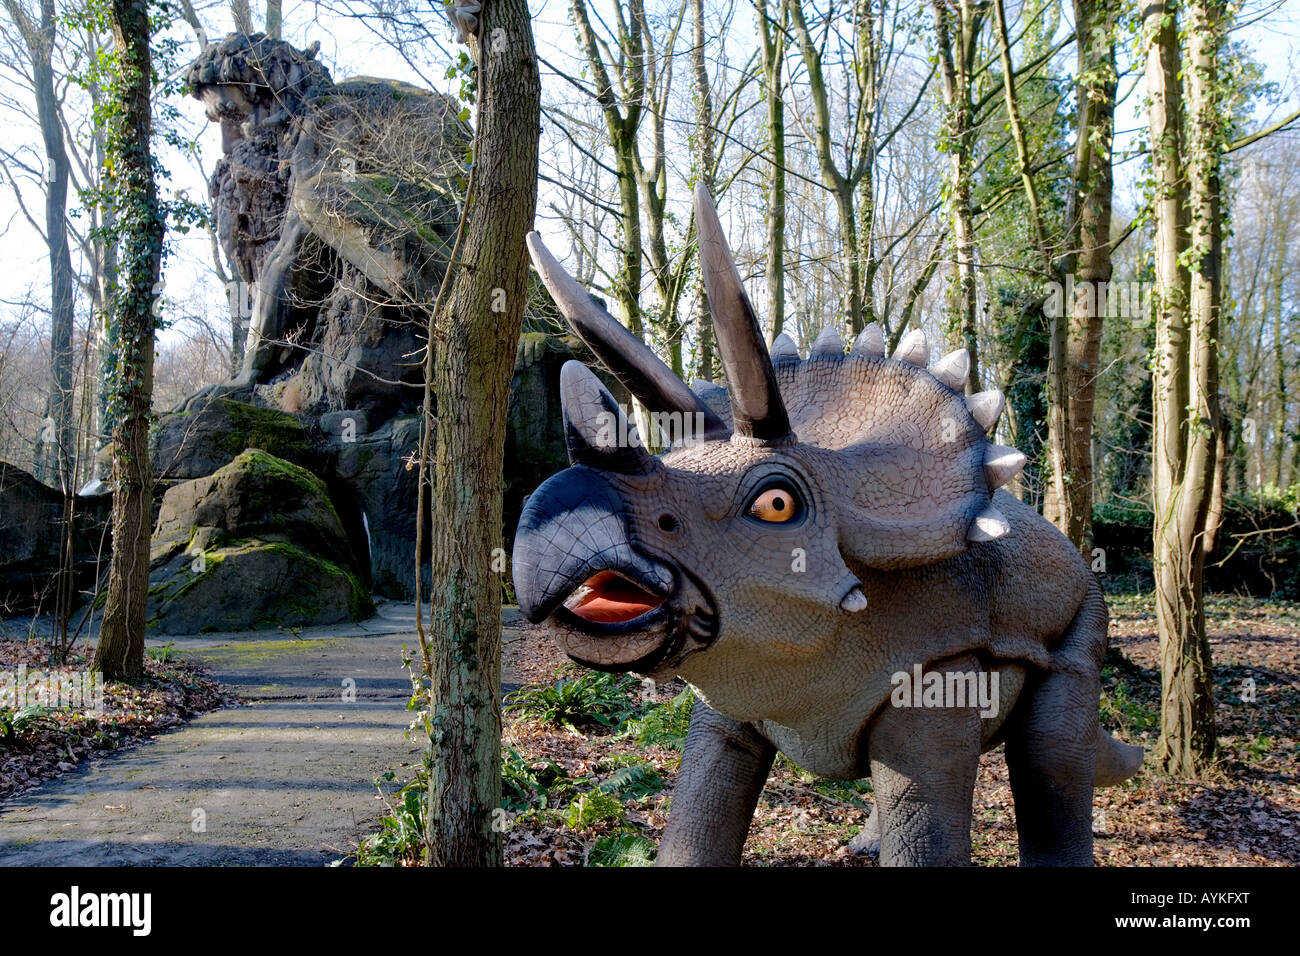 Saurier in Park Mondo Verde Dinosaur at the pleasure grounds of Mondo Verde Netherlands - Stock Image